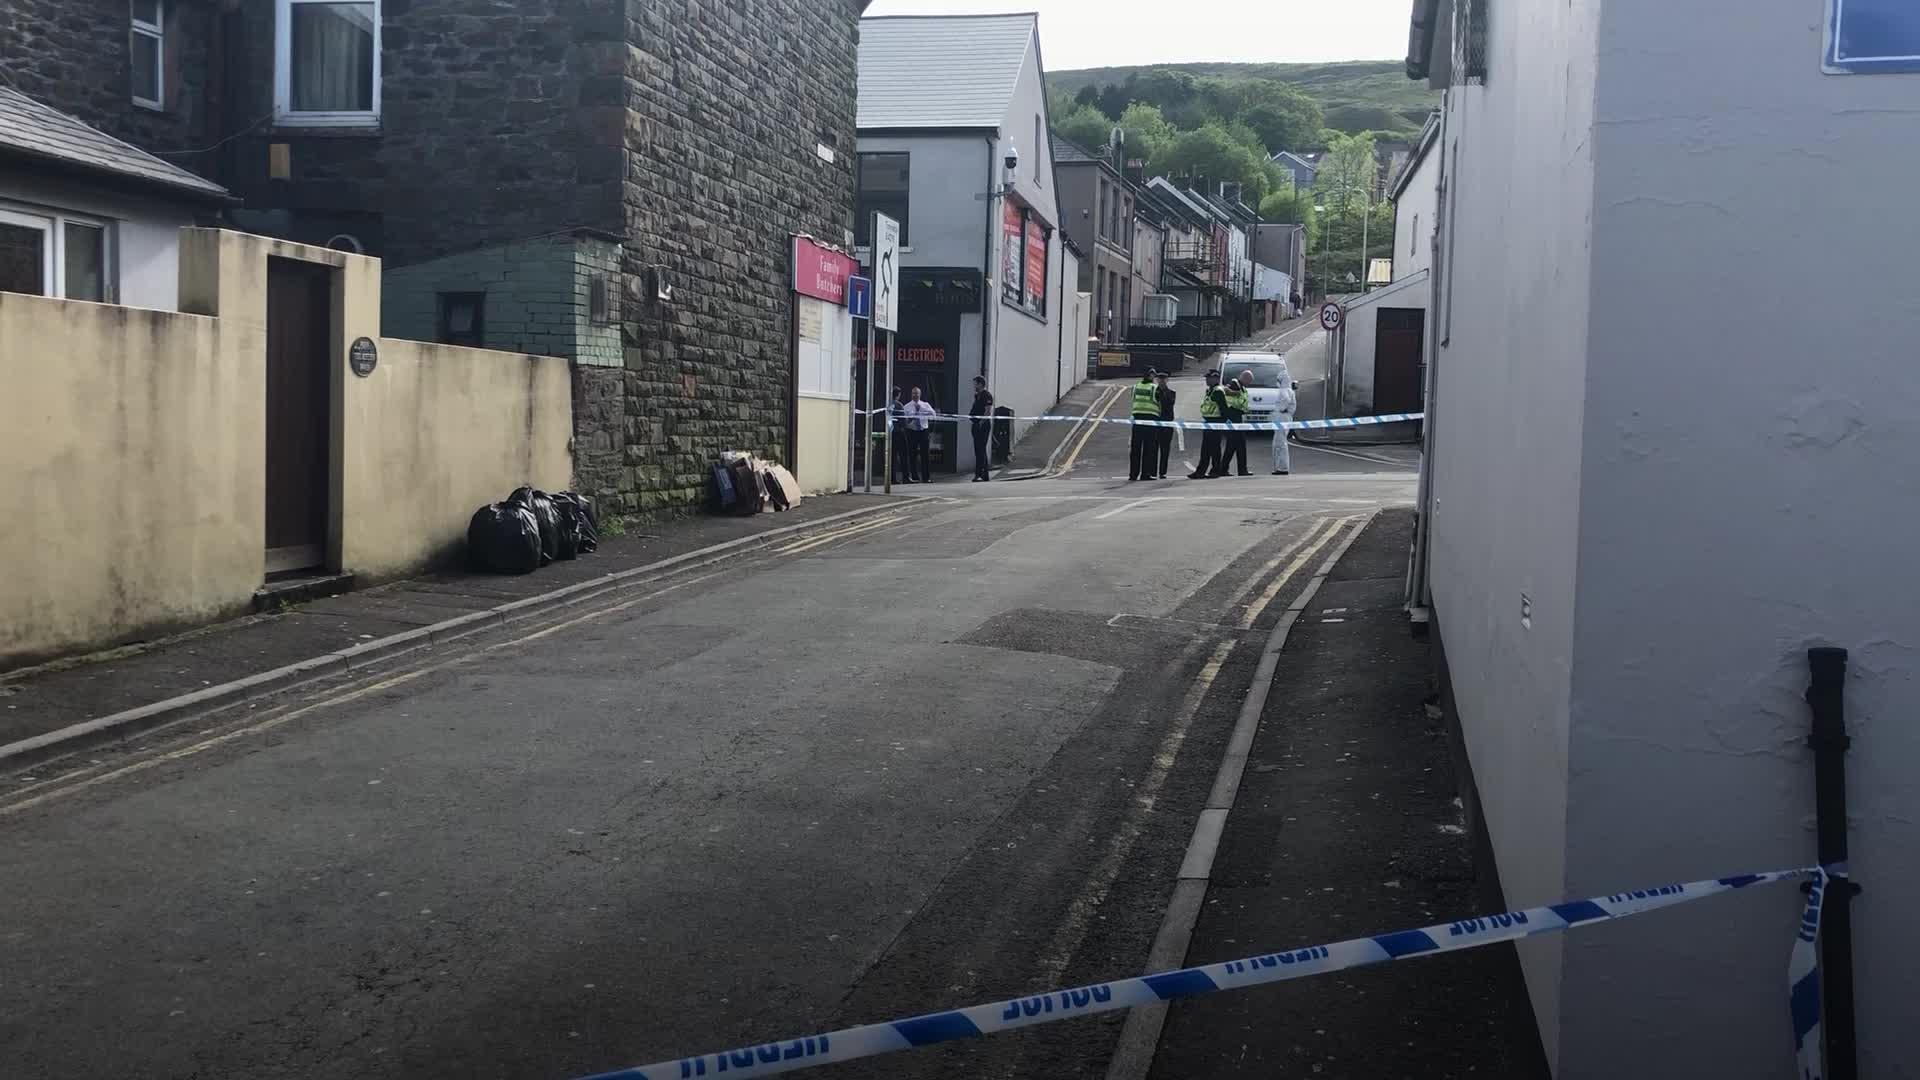 Elderly man killed in 'serious incident' in Wales